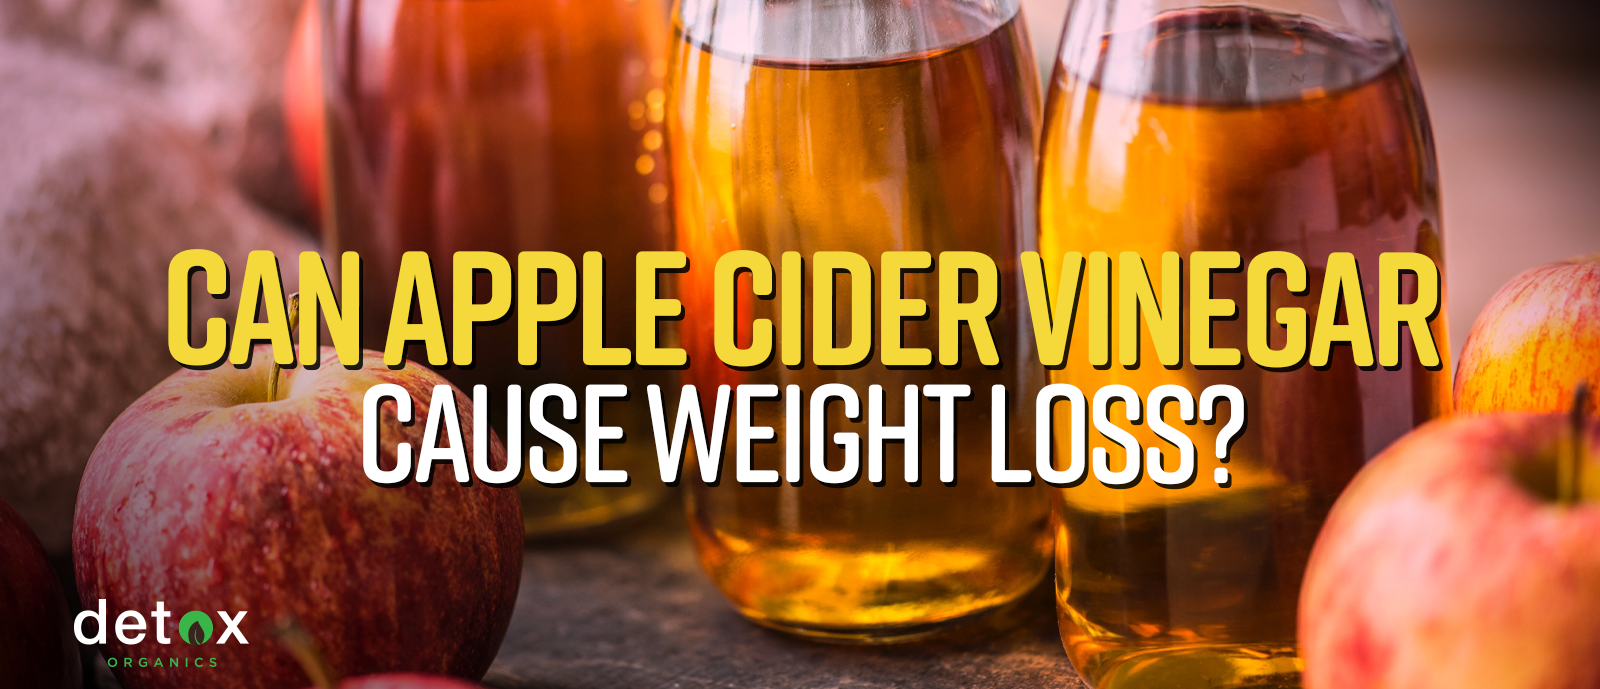 Can Apple Cider Vinegar Cause Weight Loss? (Other ACV Benefits)